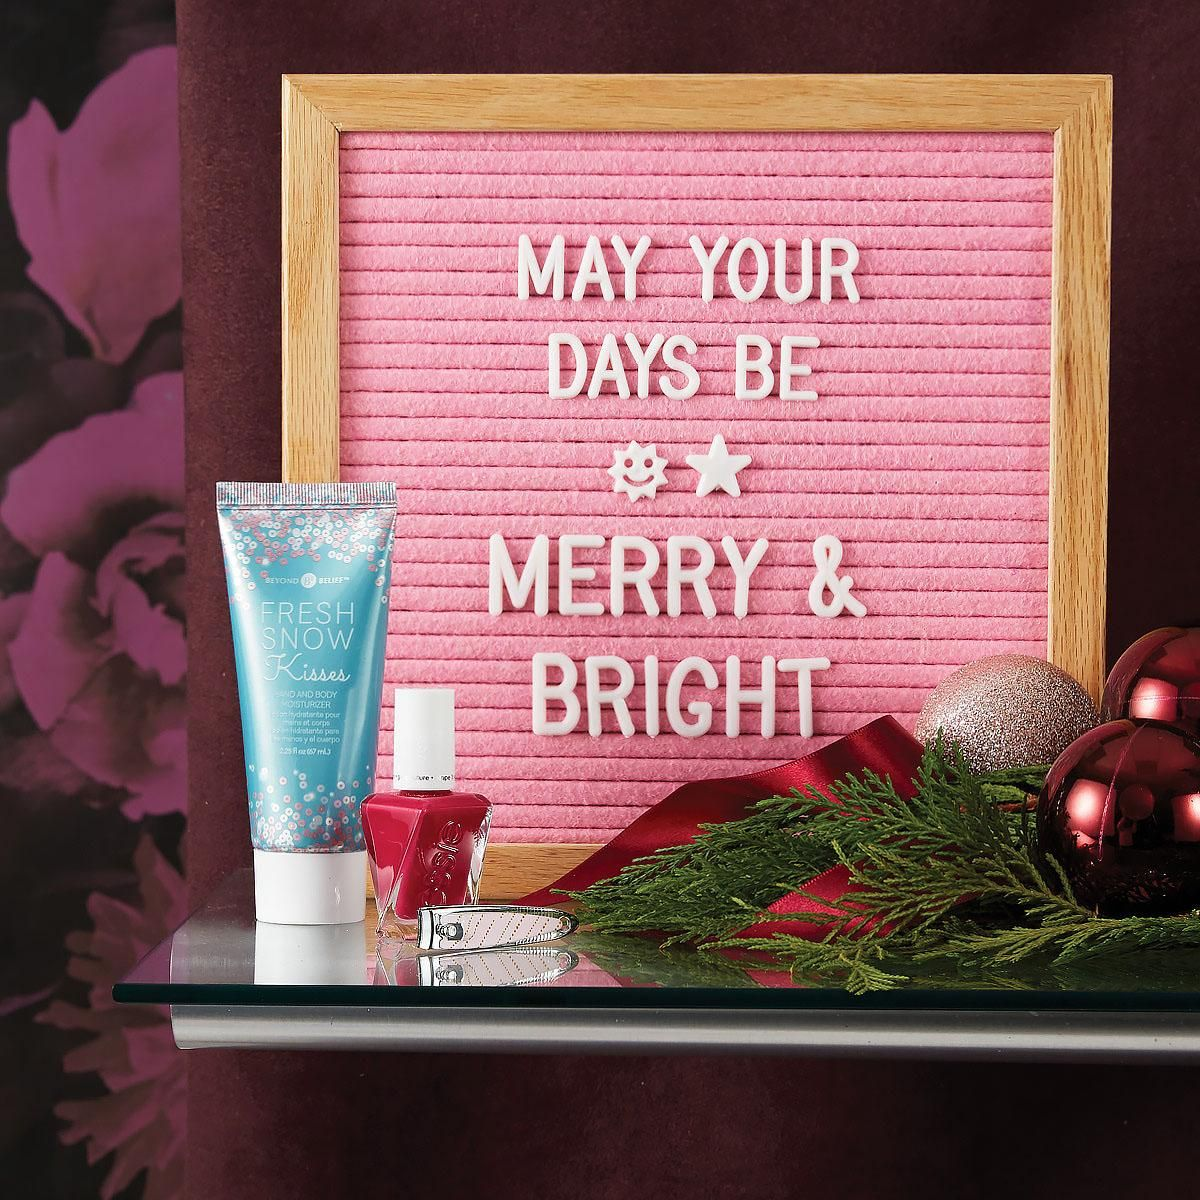 Merry Christmas from all of us at Sally's! Salon